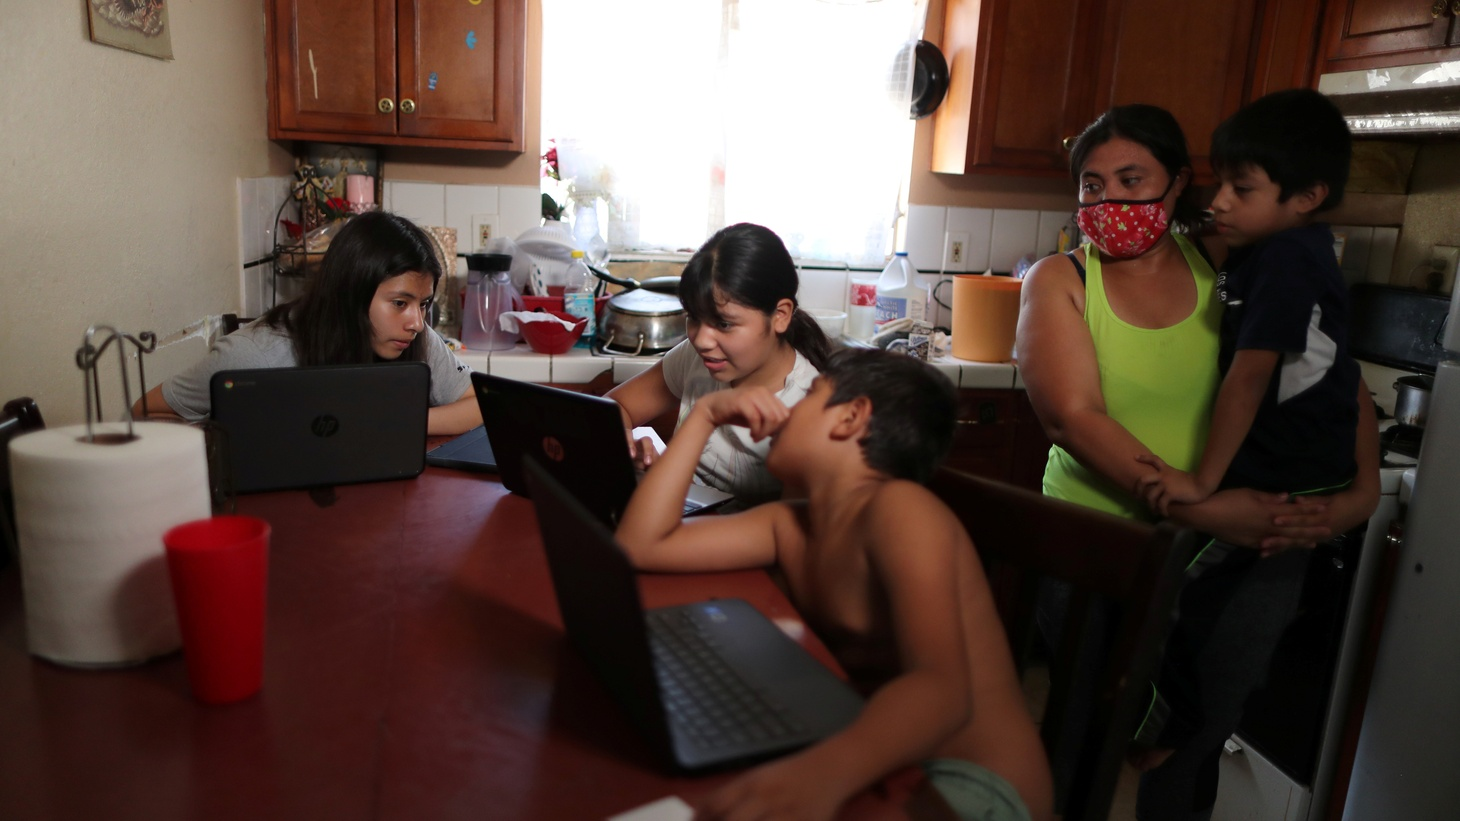 Los Angeles Unified School District students Keiley Flores, 13, Andrea Ramos, 10, Alexander Ramos, 8, work on school-issued computers with unreliable internet connectivity at their Los Angeles home during the COVID-19 pandemic. Their mother Anely Solis, 32, and their brother Enrique Ramos, 5, look on. August 18, 2020.